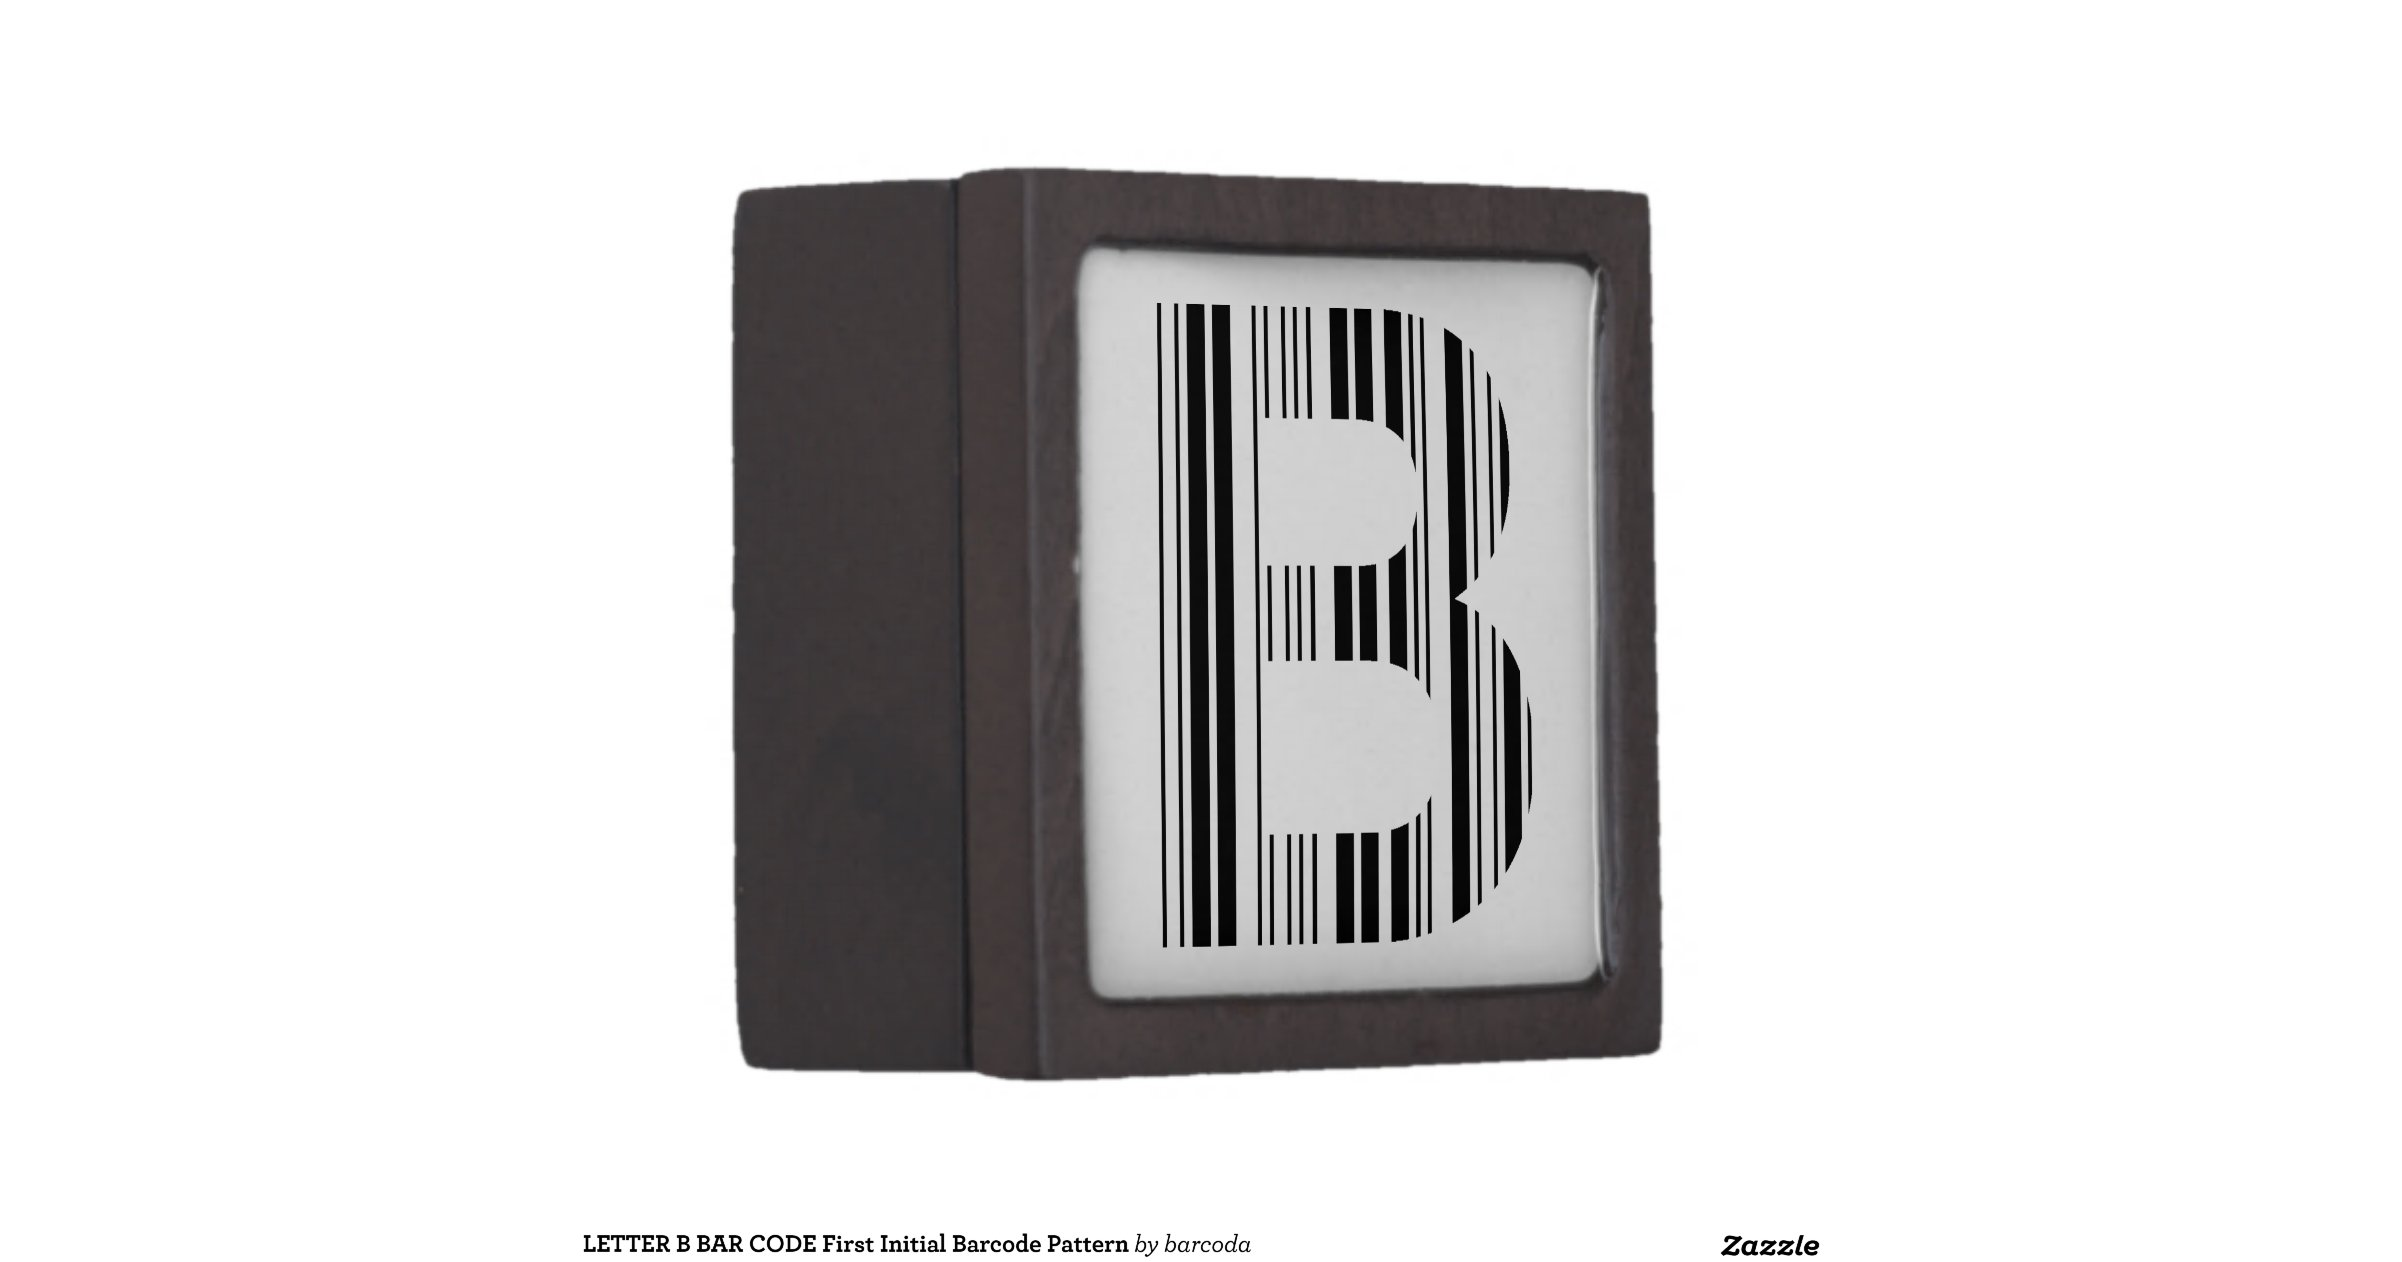 LETTER B BAR CODE First Initial Barcode Pattern Premium